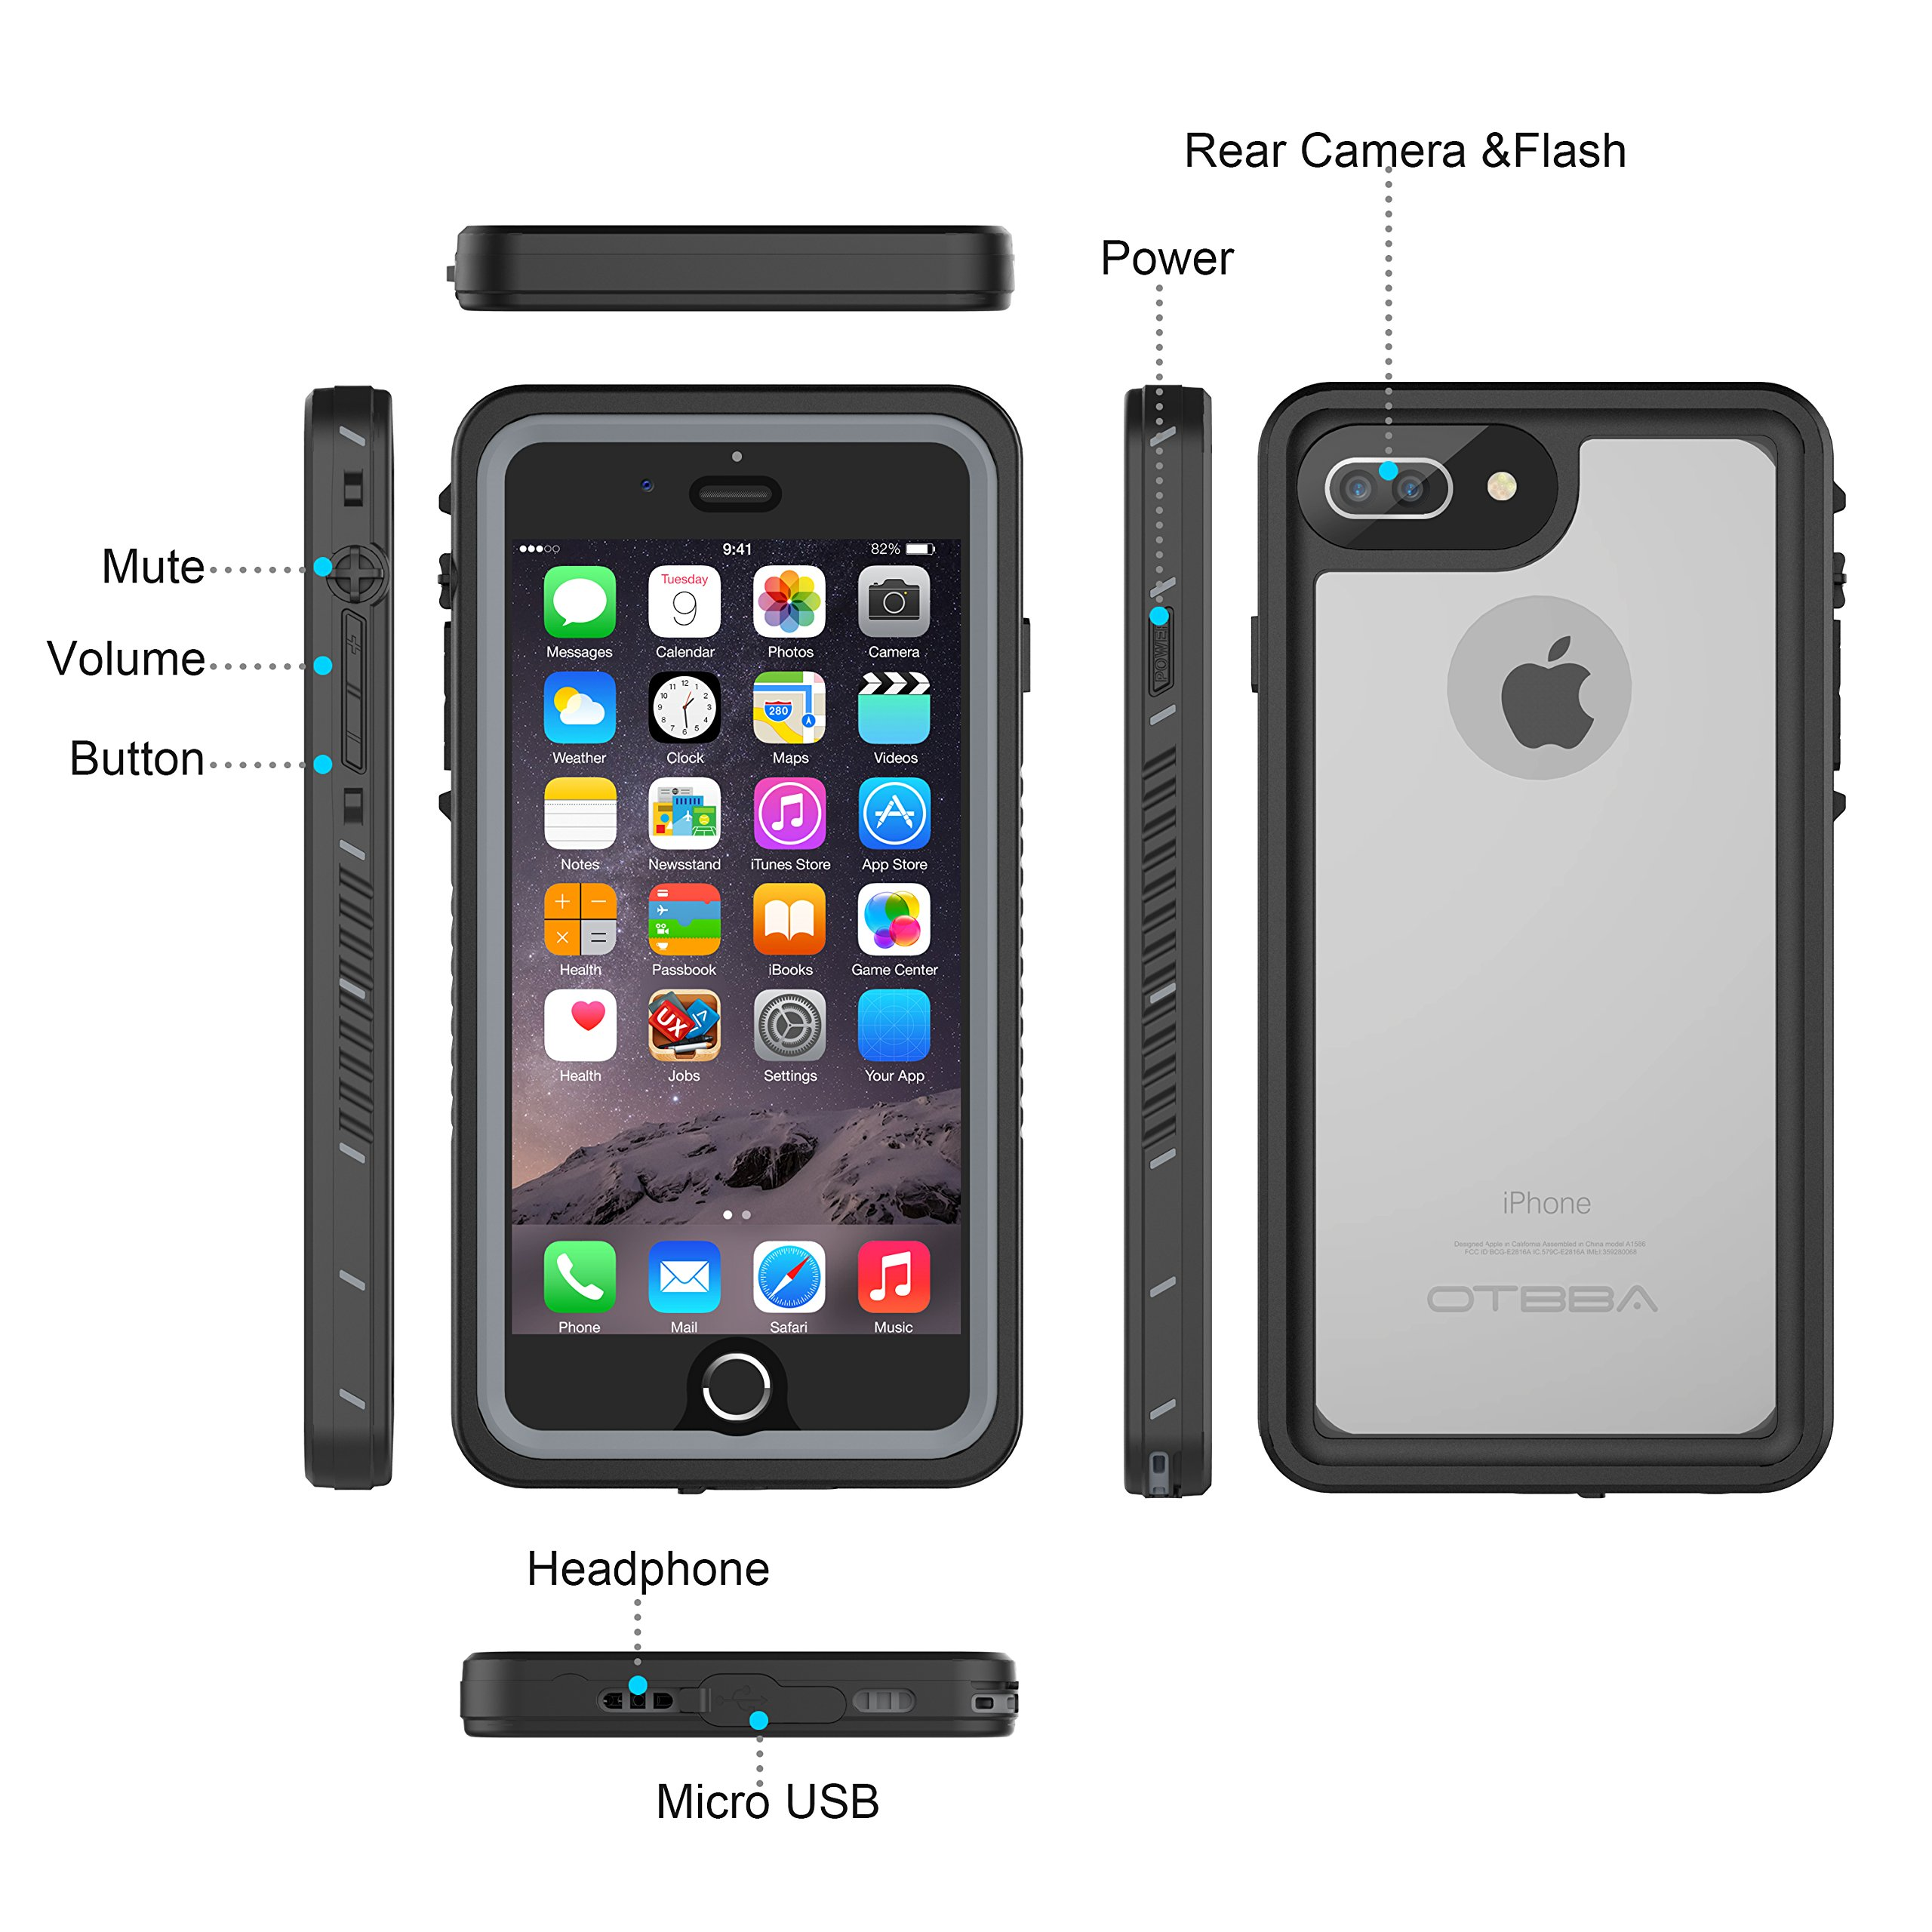 iPhone 7 Plus/8 Plus Waterproof Case, OTBBA Underwater Snowproof Dirtproof Shockproof IP68 Certified with Touch ID Full Sealed Cover Waterproof Case for iPhone 7 Plus/8 Plus-5.5in (Clear) by OTBBA (Image #4)